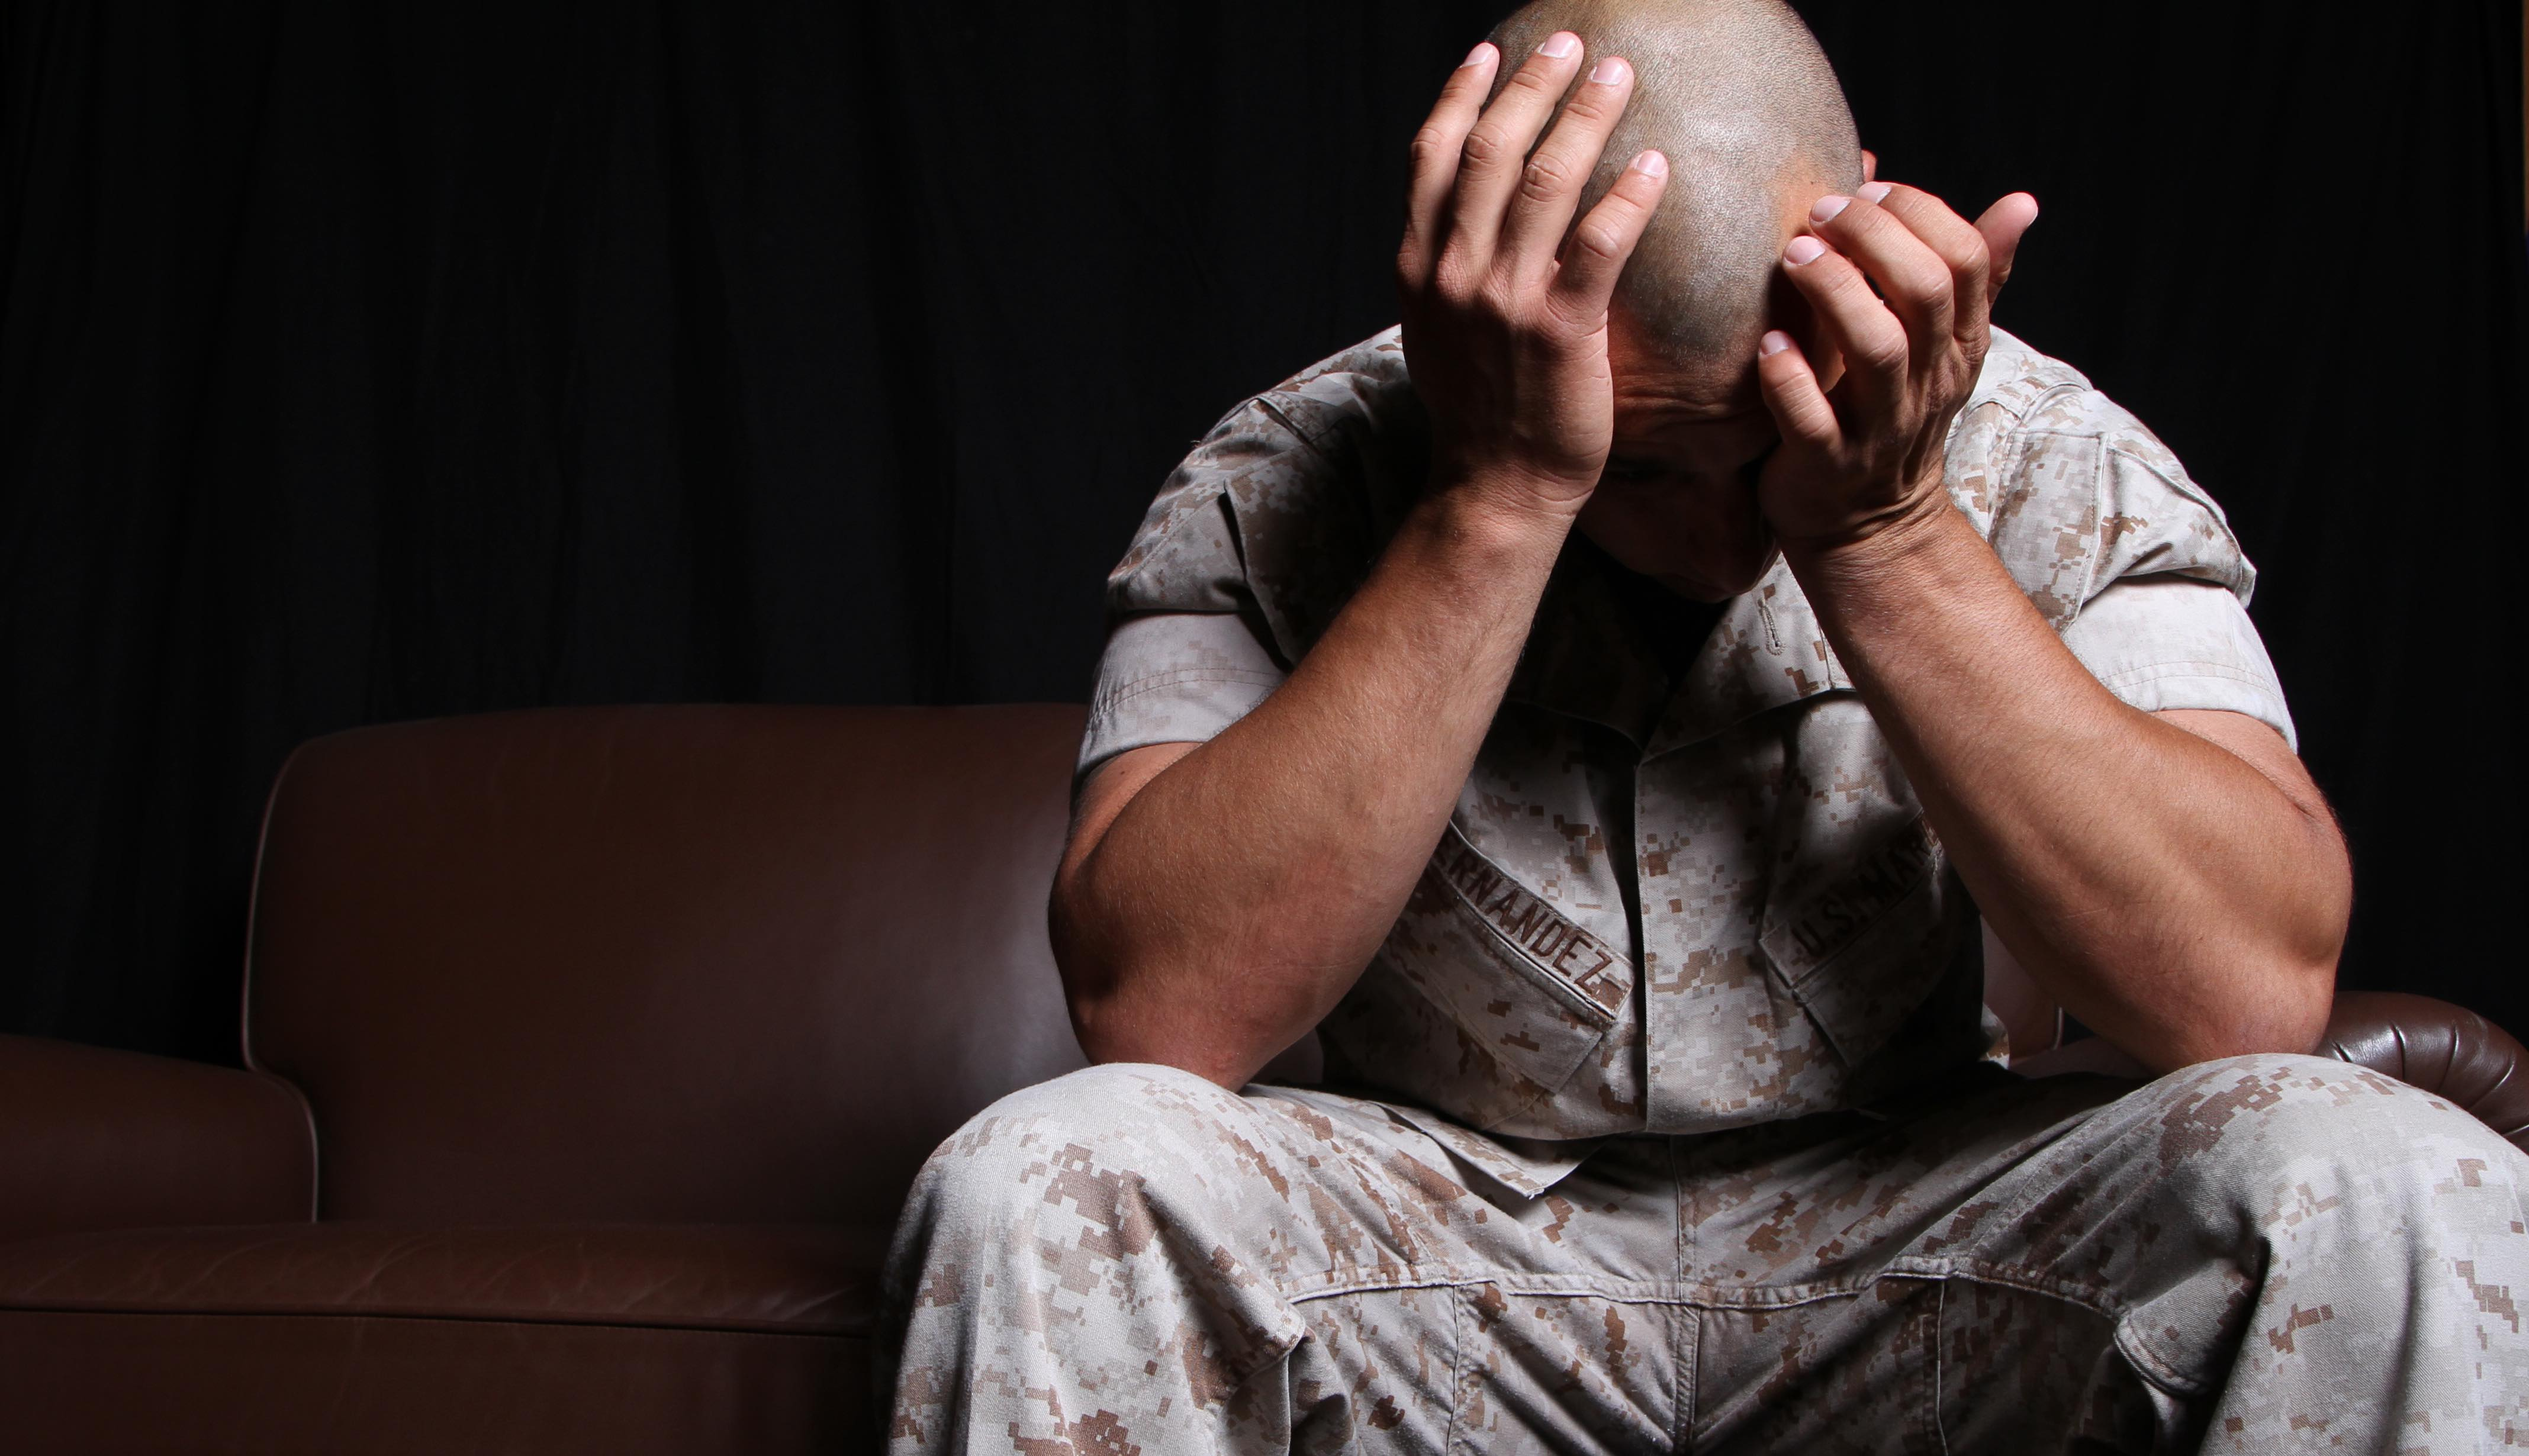 PTSD Treatment